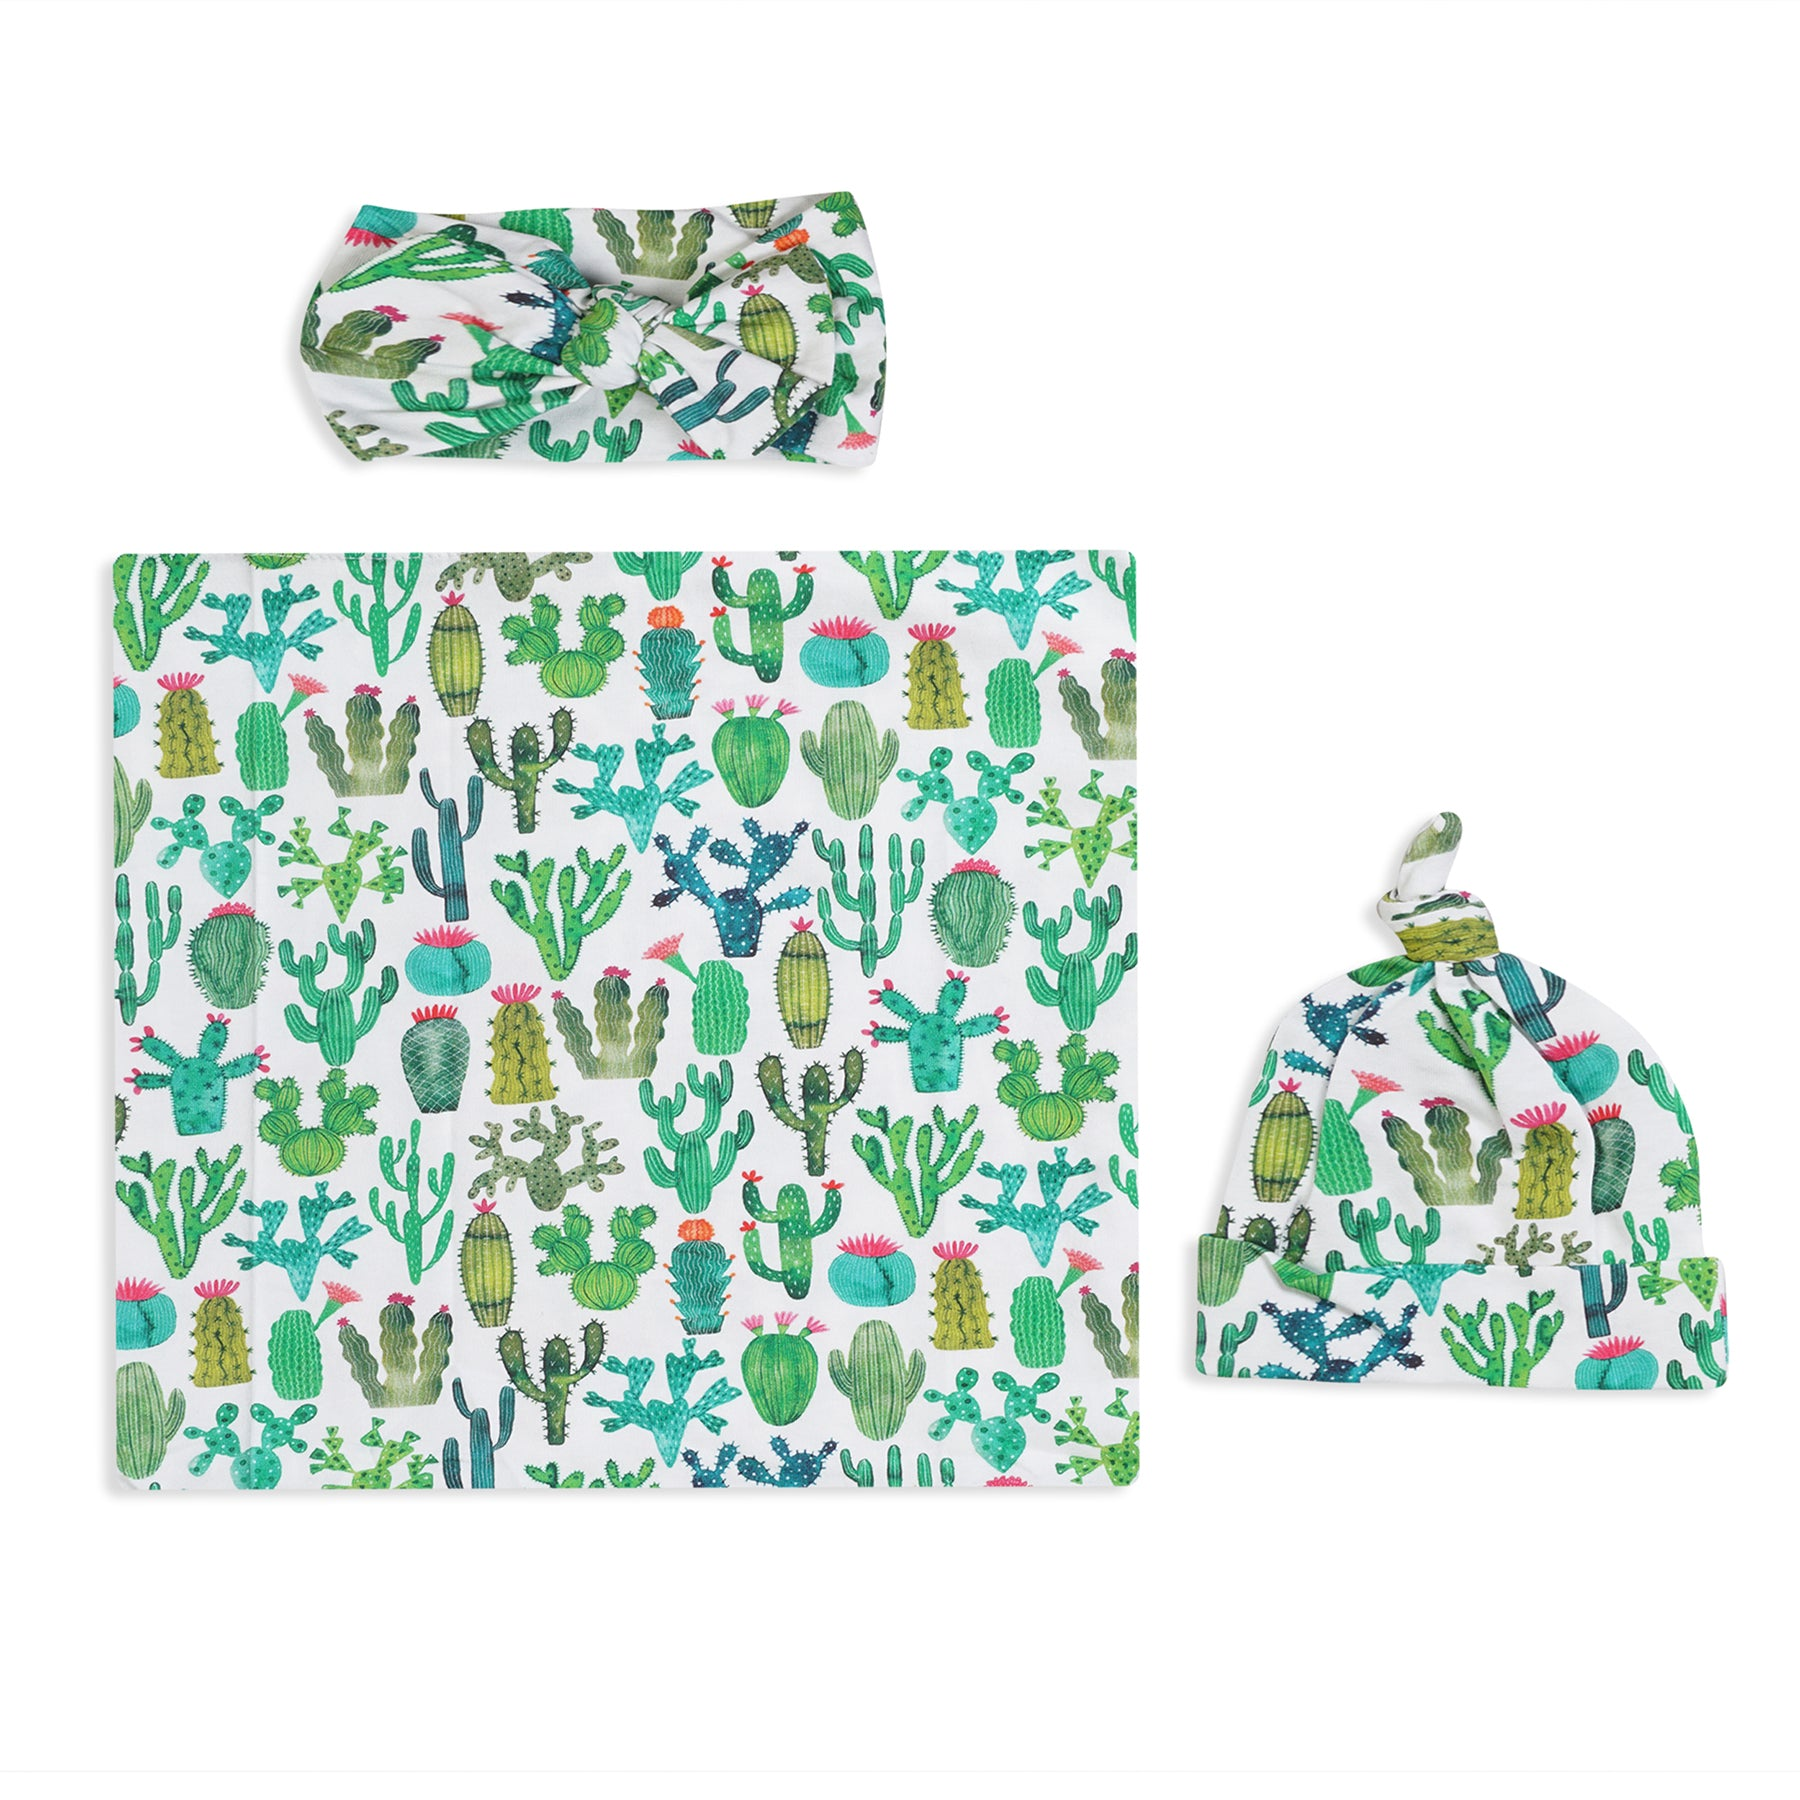 Cactus Printed Swaddle Set For Newborn Baby Boy And Girl With Organic Maternity Robe | Comfy Mommy